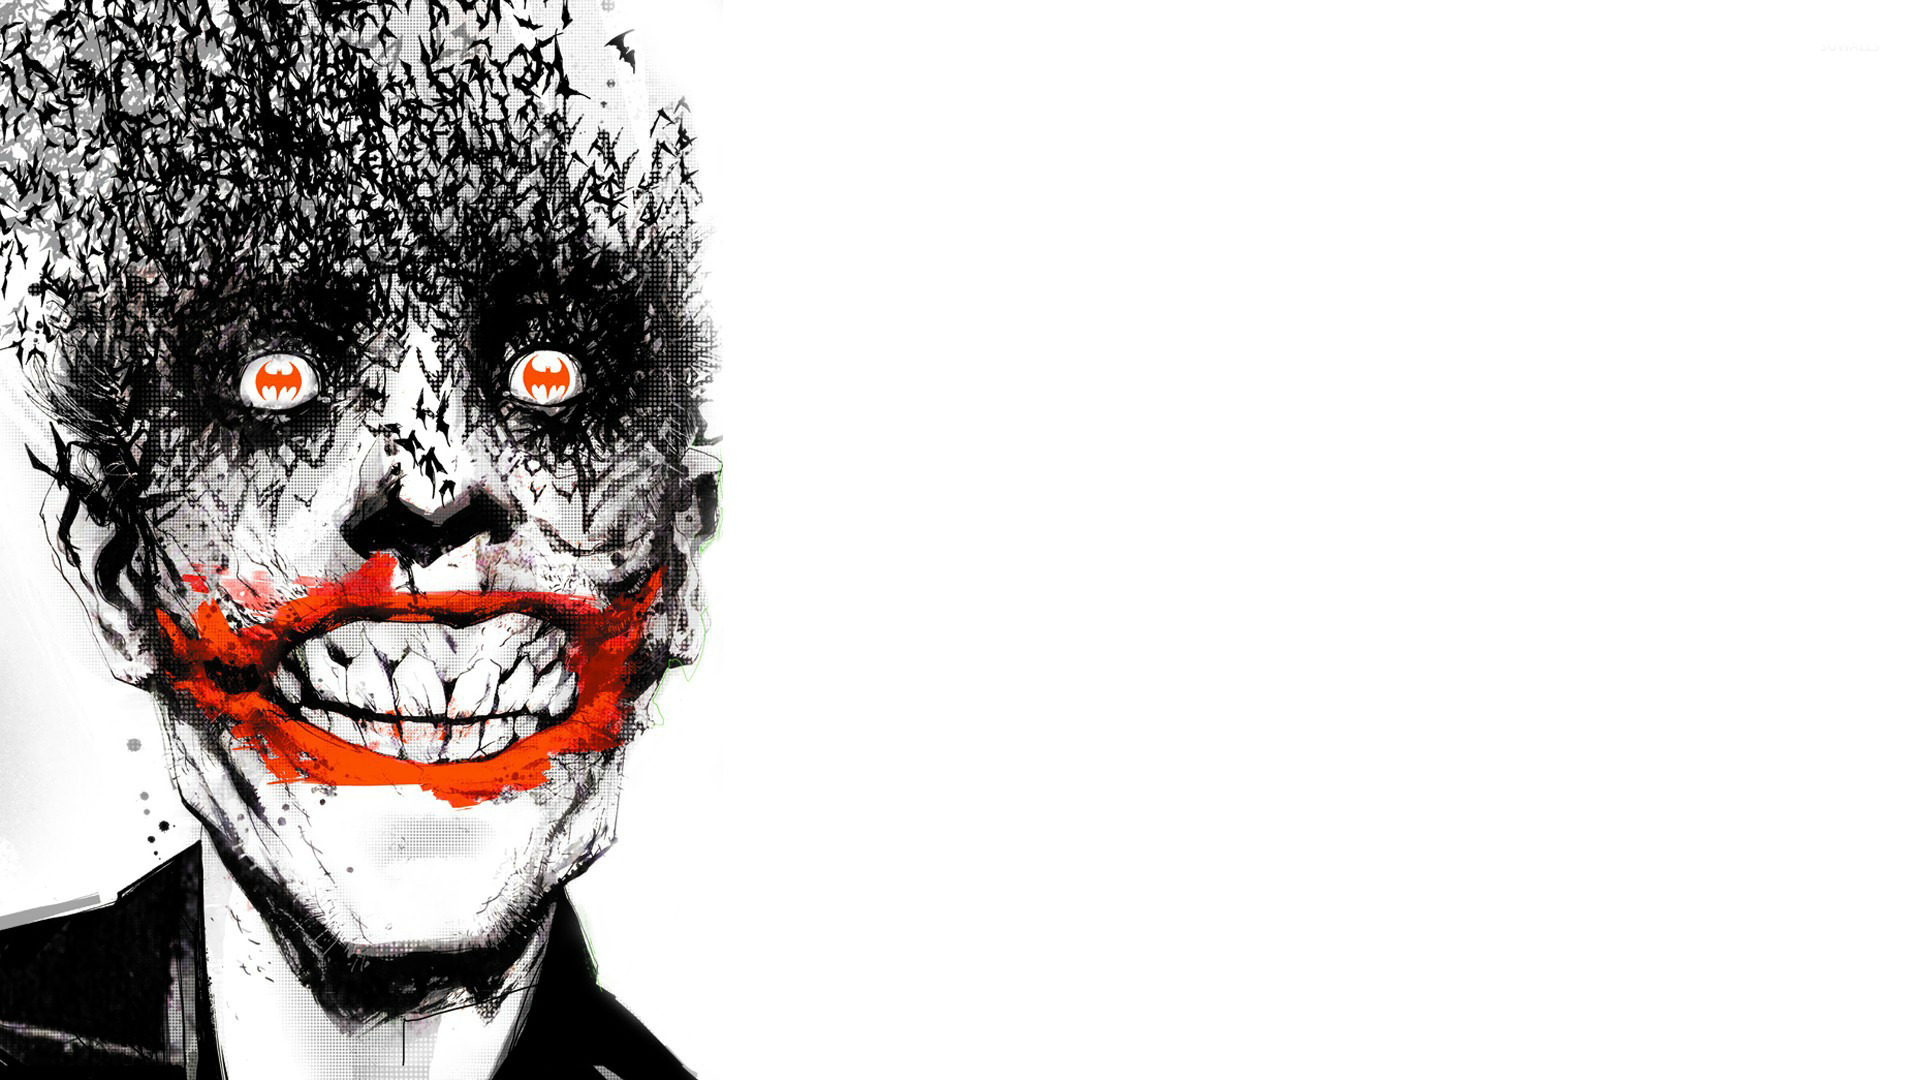 Joker Comic Wallpaper HD - WallpaperSafari